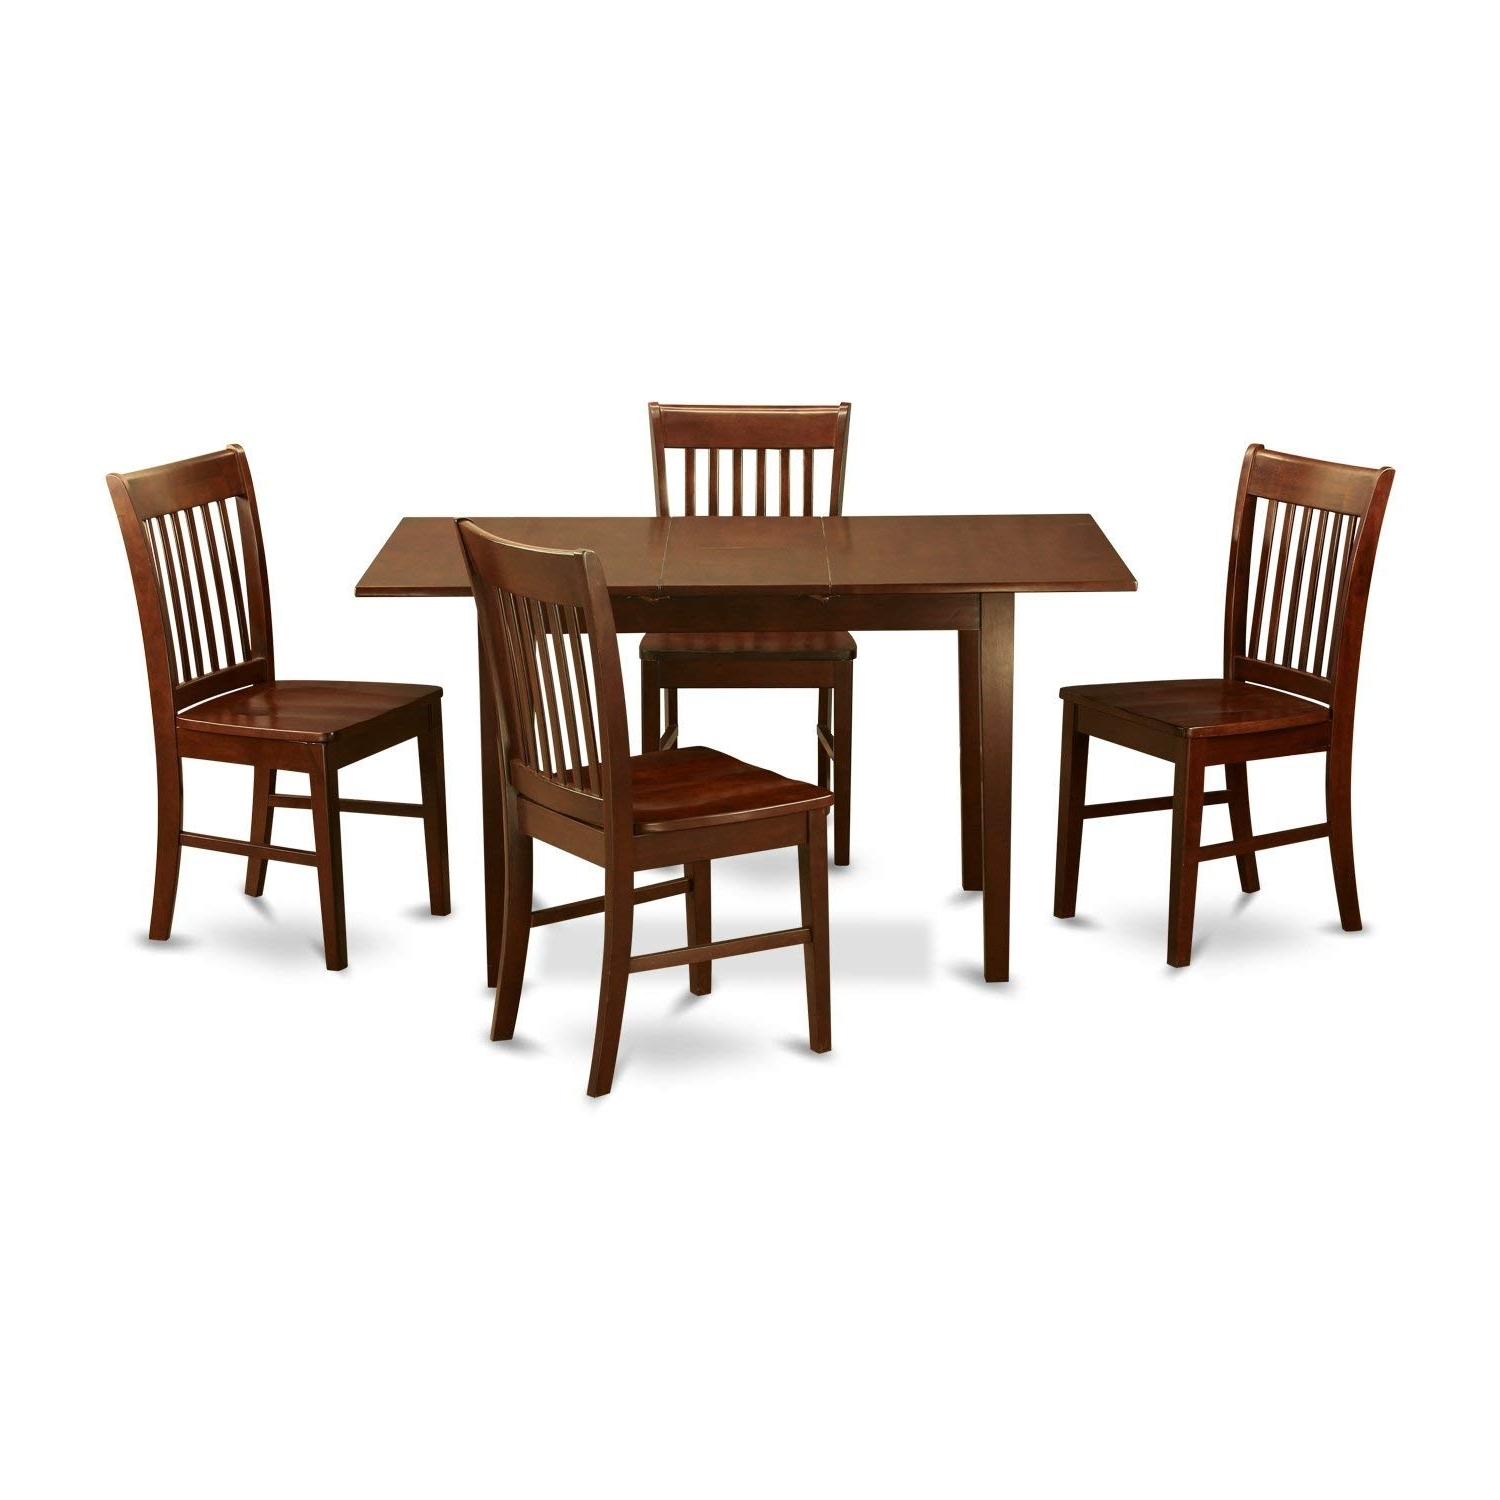 Well Liked Pierce 5 Piece Counter Sets With Regard To Amazon – East West Furniture Nofk5 Mah W 5 Piece Kitchen Table (View 24 of 25)